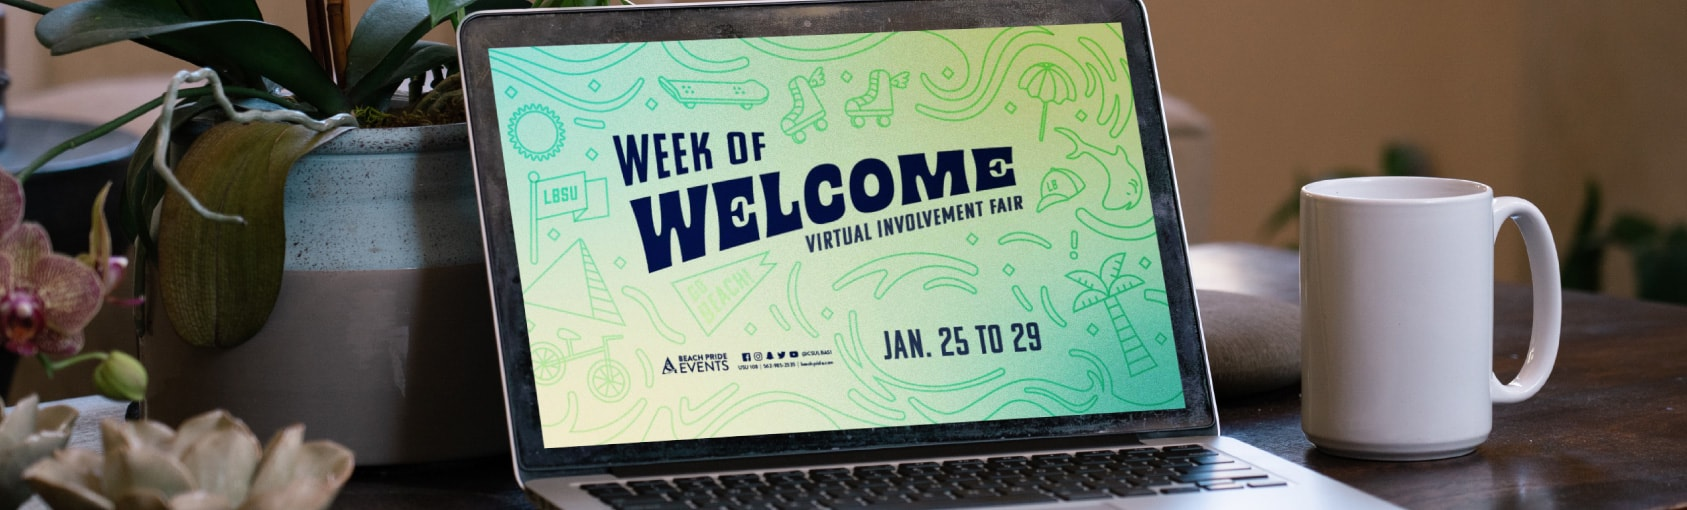 Spring Week of Welcome banner